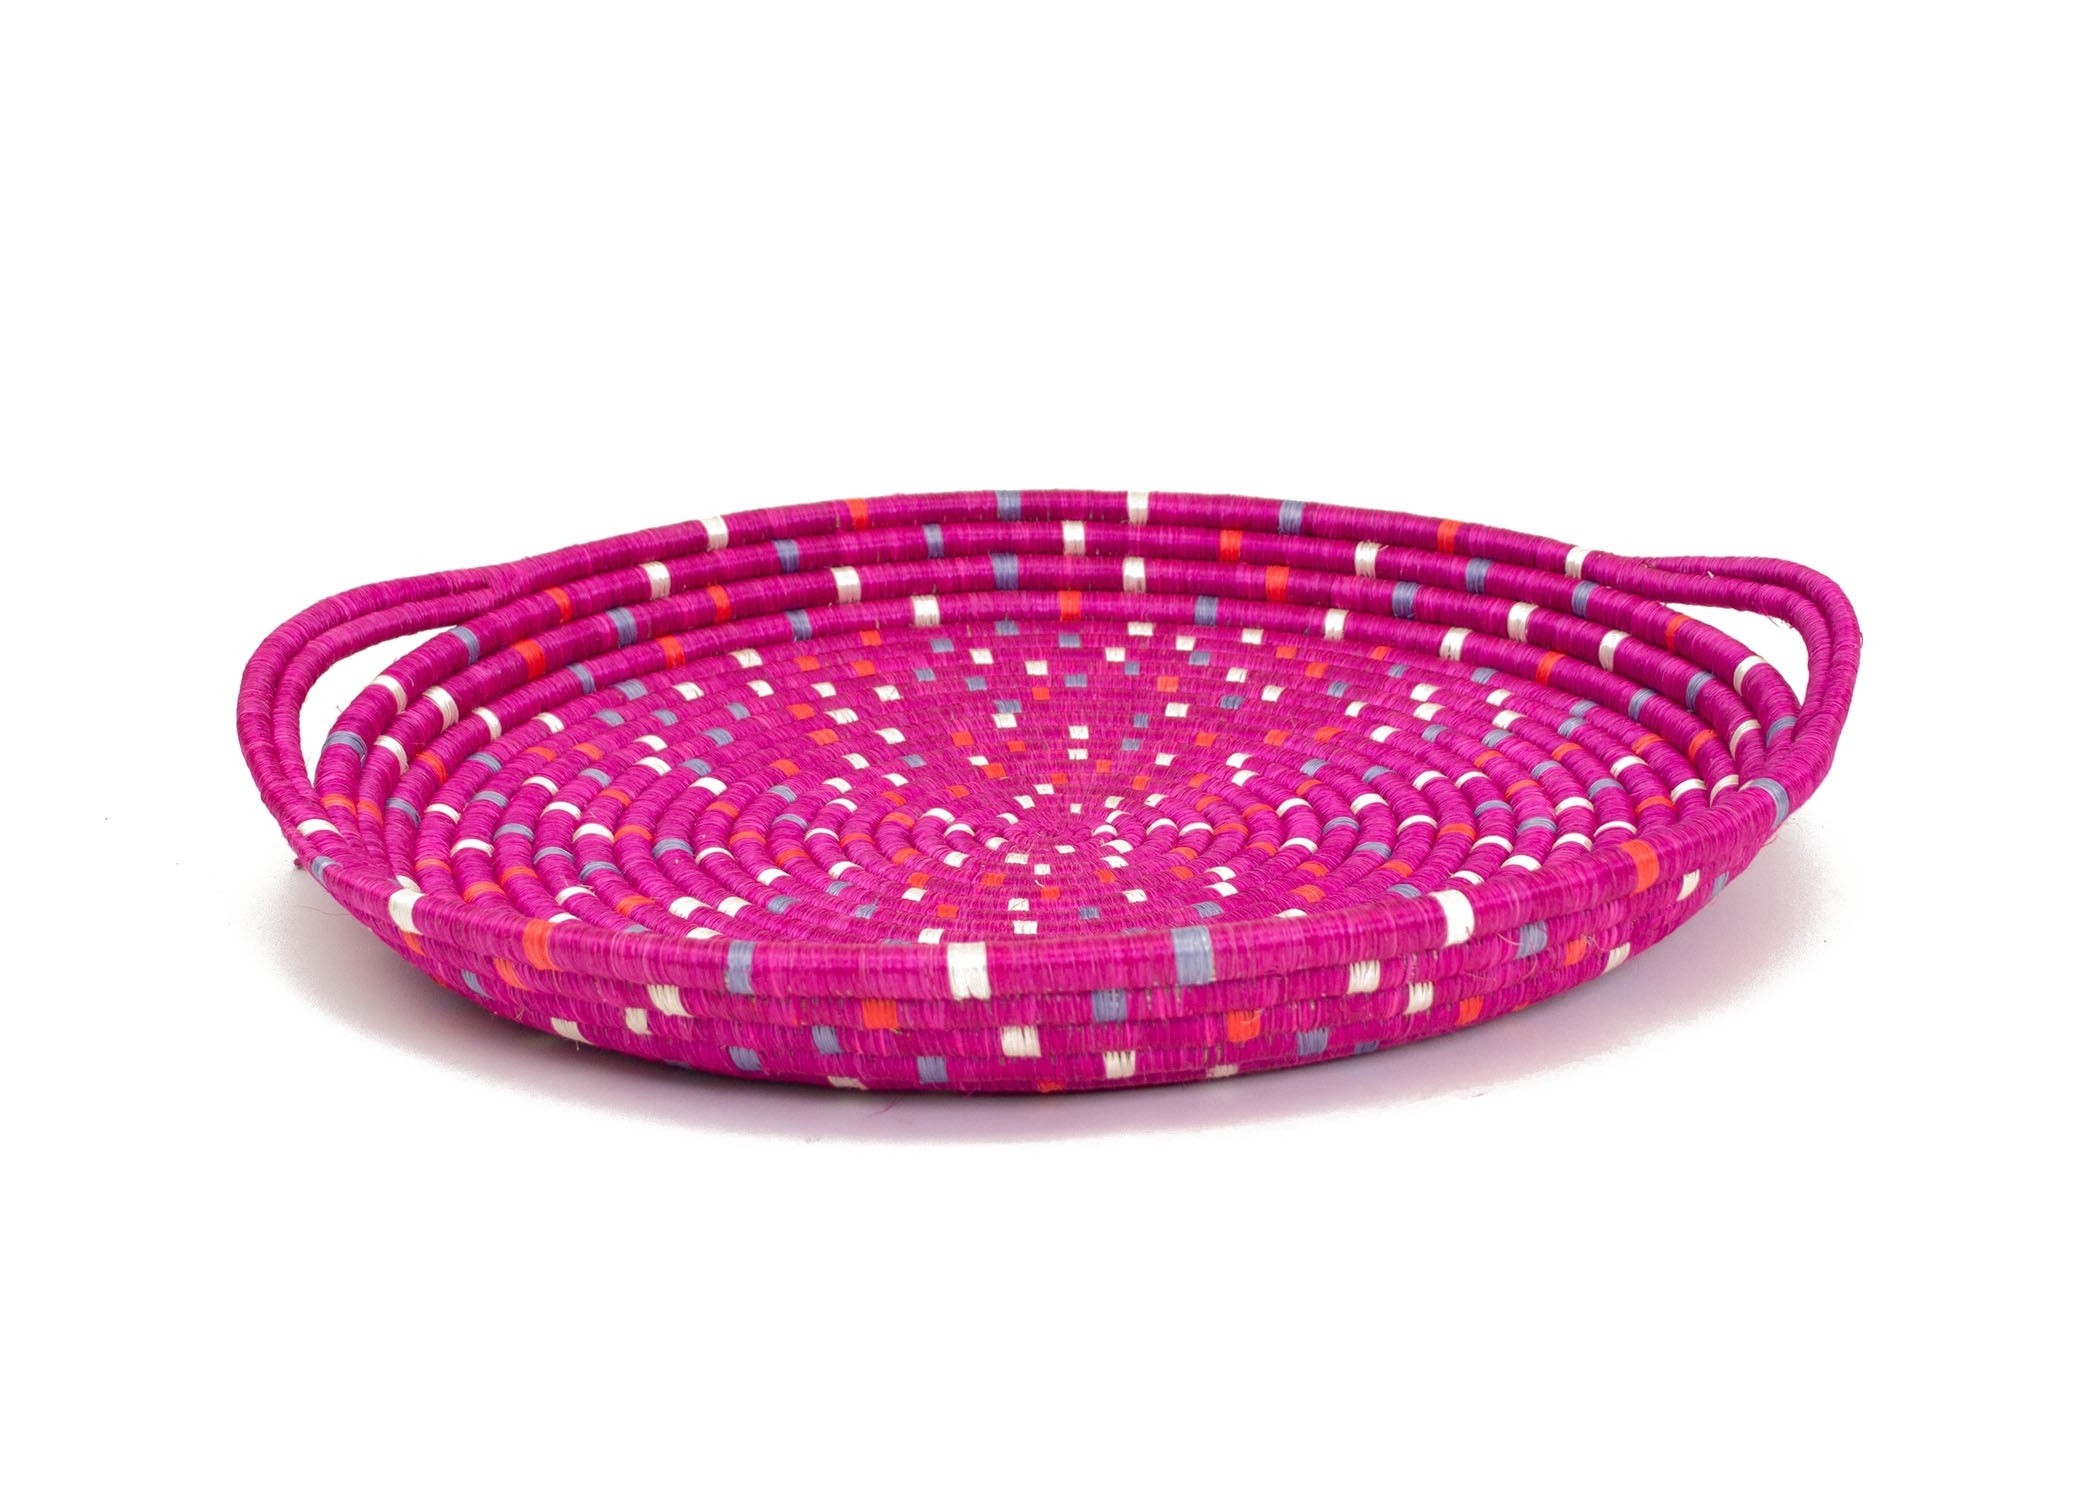 Speckled Vivid Viola Serving Tray with Handles - KAZI - Artisan made high quality home decor and wall art